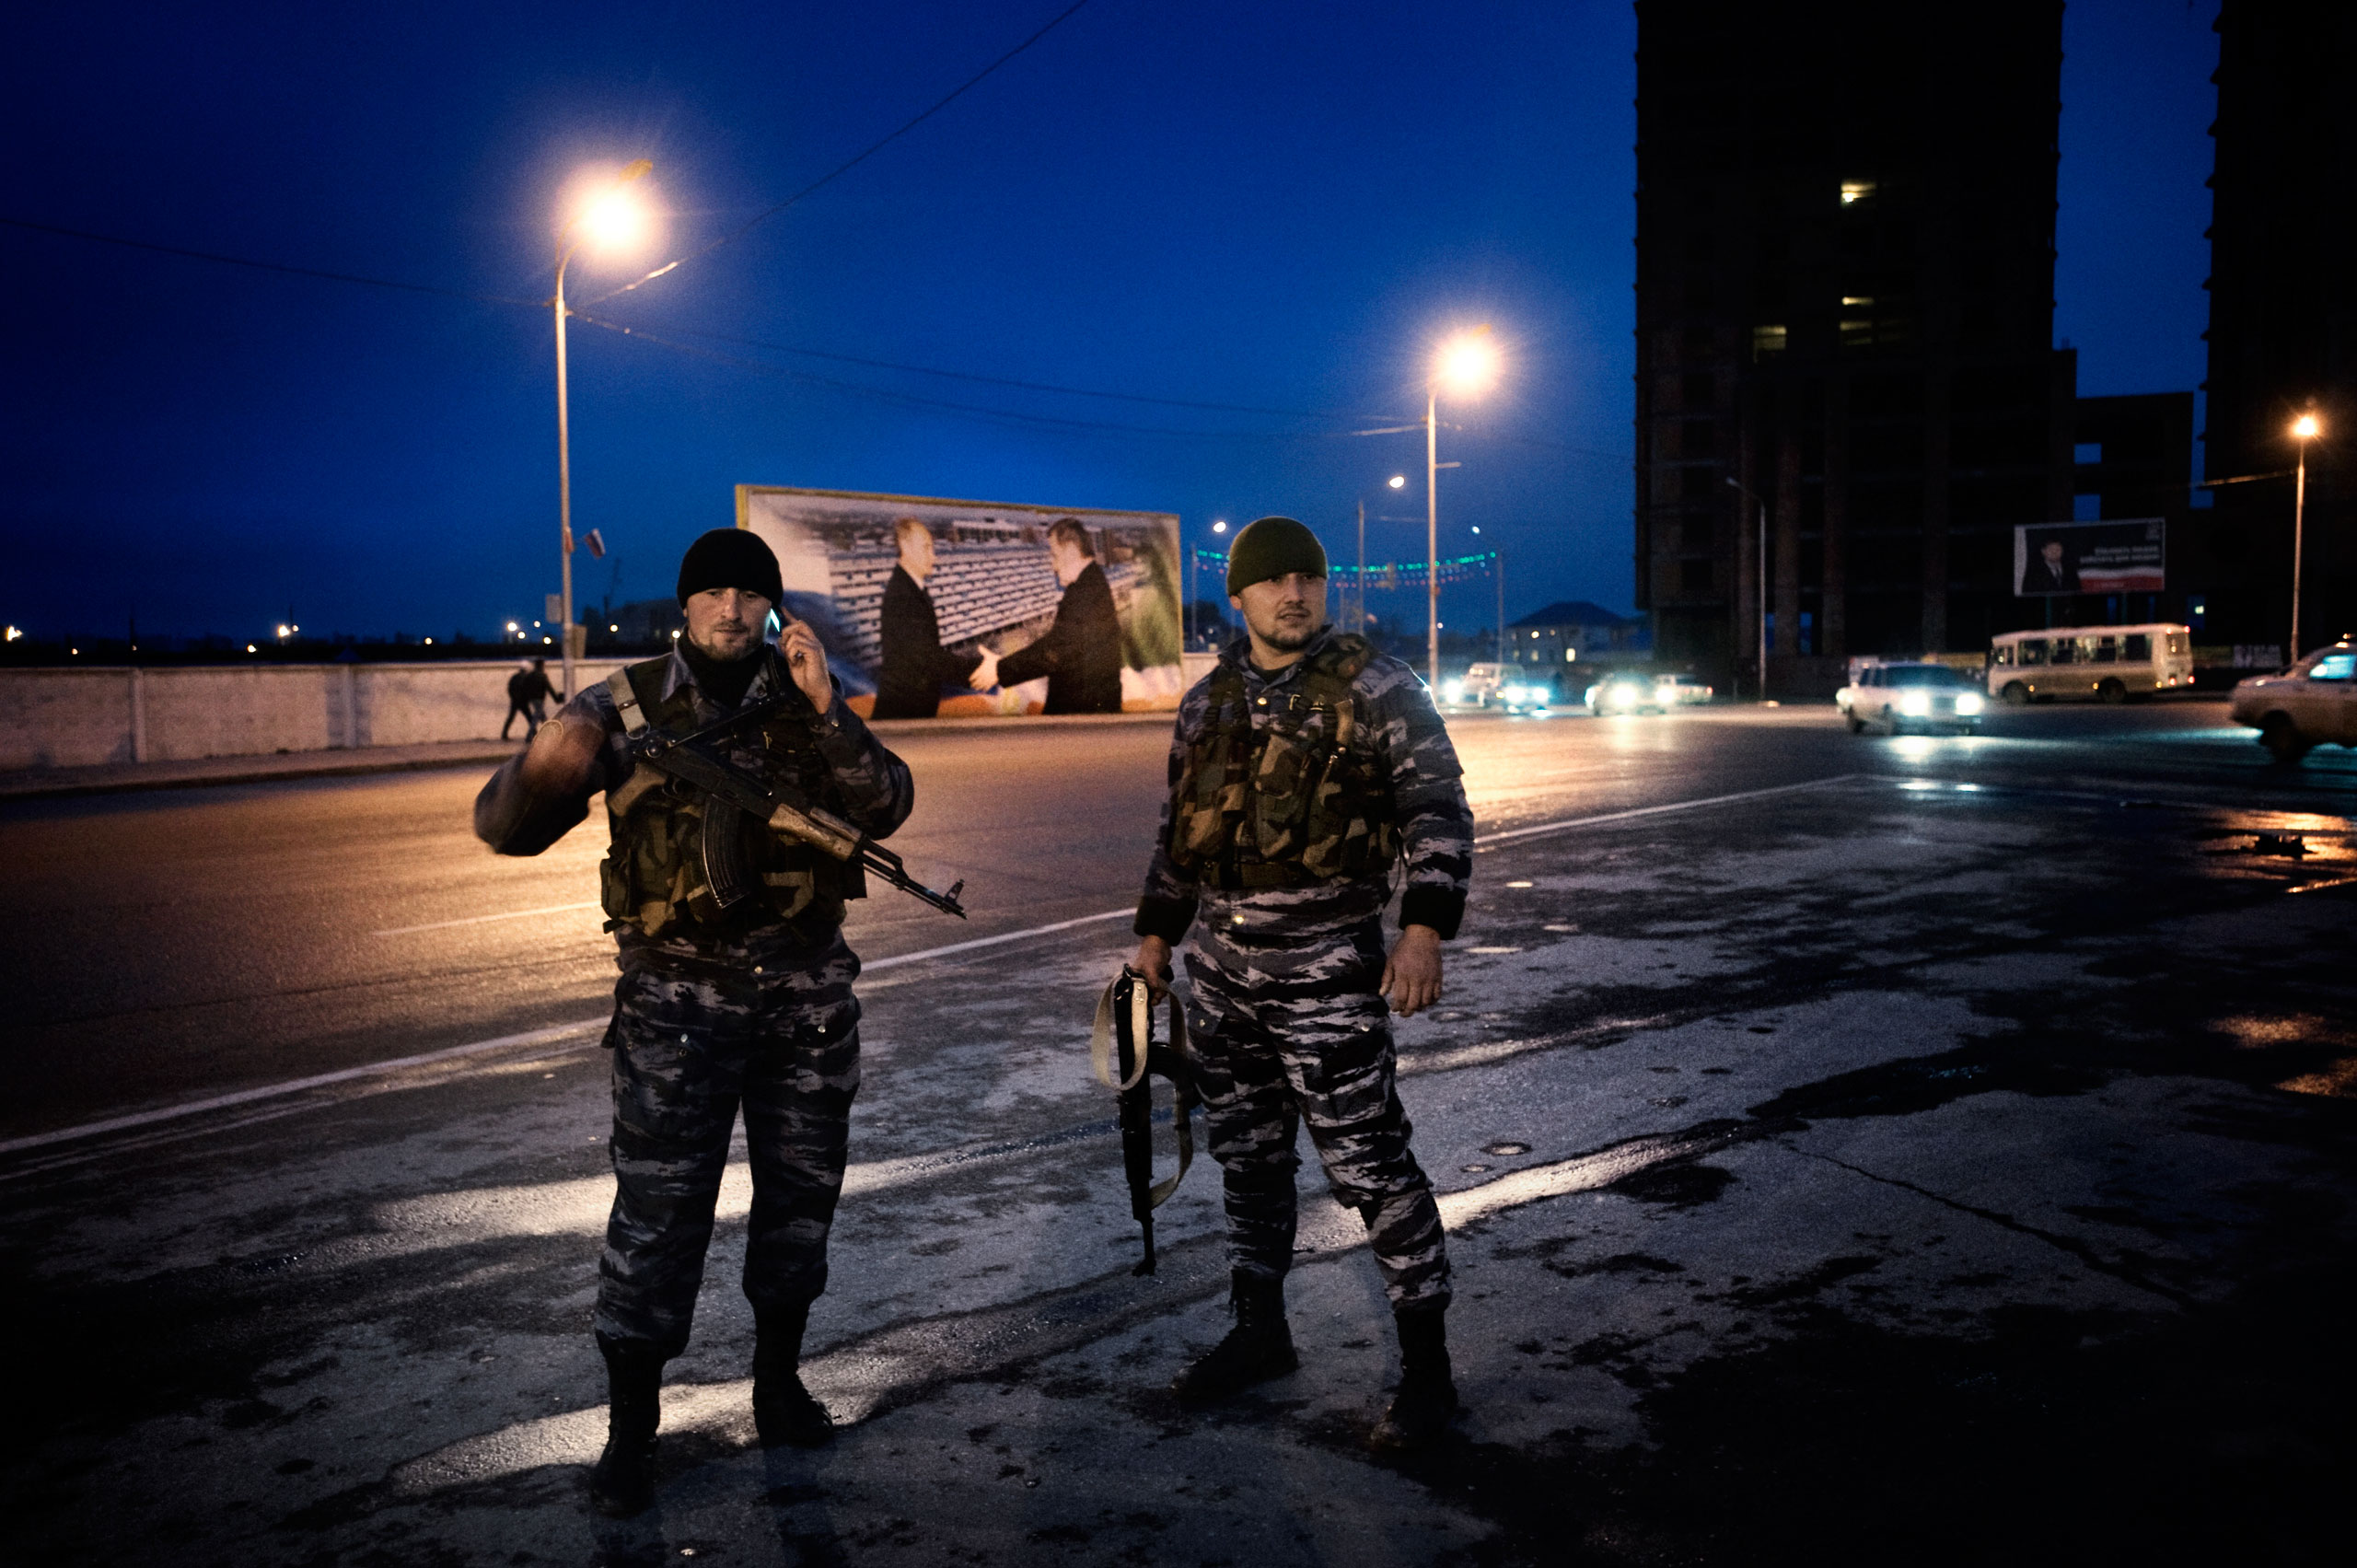 Chechen policemen, often targeted by rebels, guard a Grozny street with a billboard of Russian President Vladimir Putin and slain President Akhmad Kadyrov in the background. By 2009, Russia lifted martial law in Chechnya, and allowed the locals to police the region themselves, thereby succeeding in making faithful servants of some of Russia's most determined enemies, November 2009.